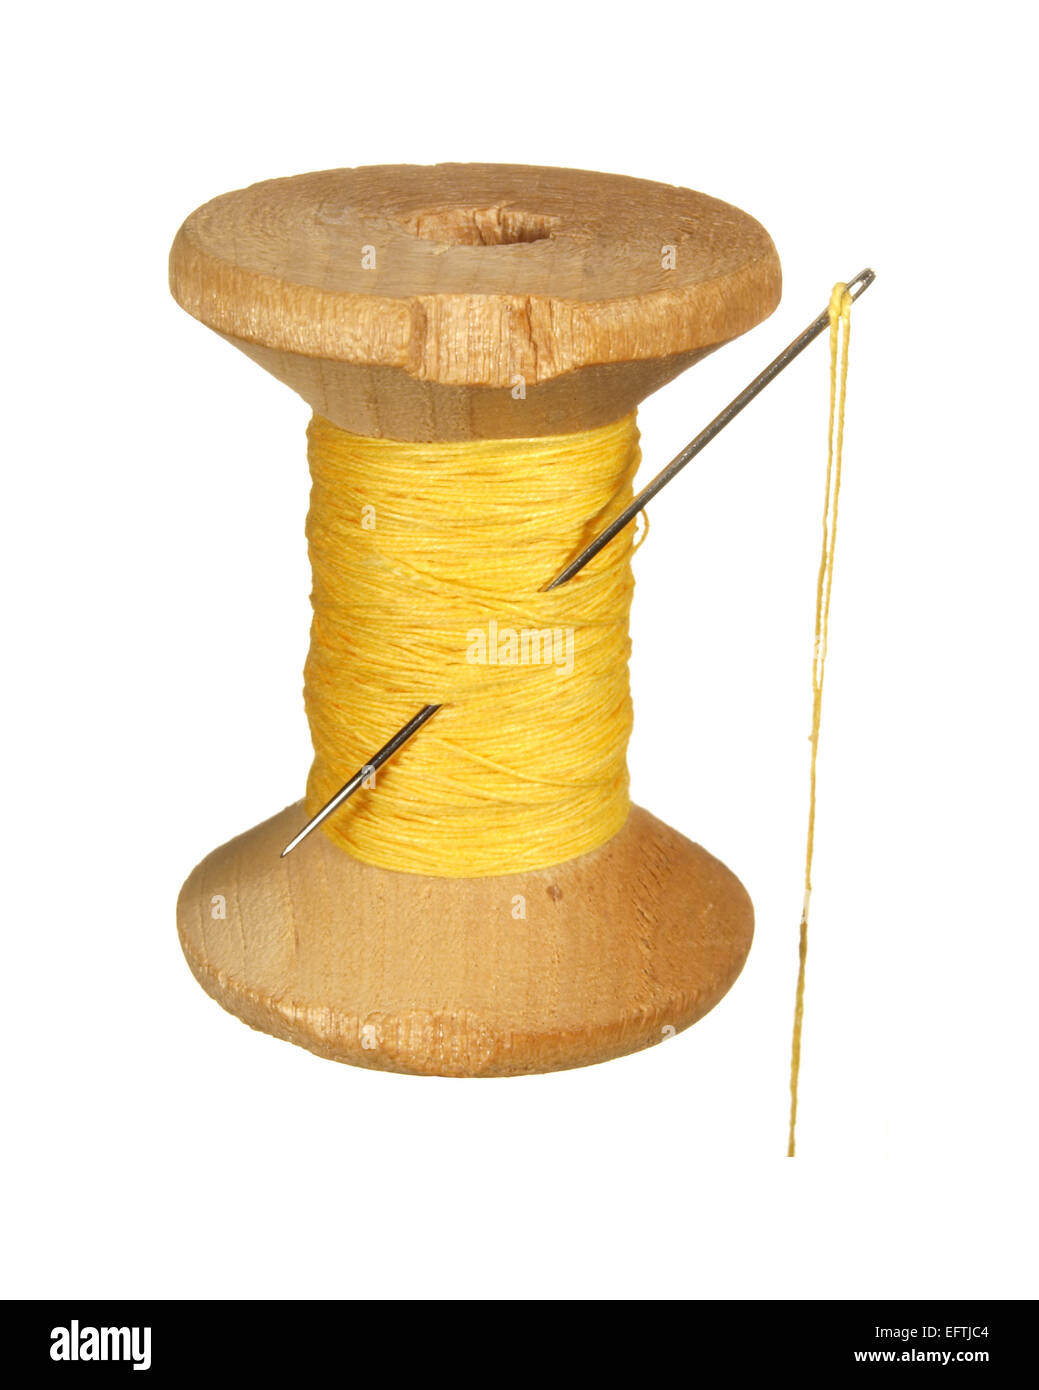 Old wooden spool of yellow thread and needle isolated on white background. - Stock Image